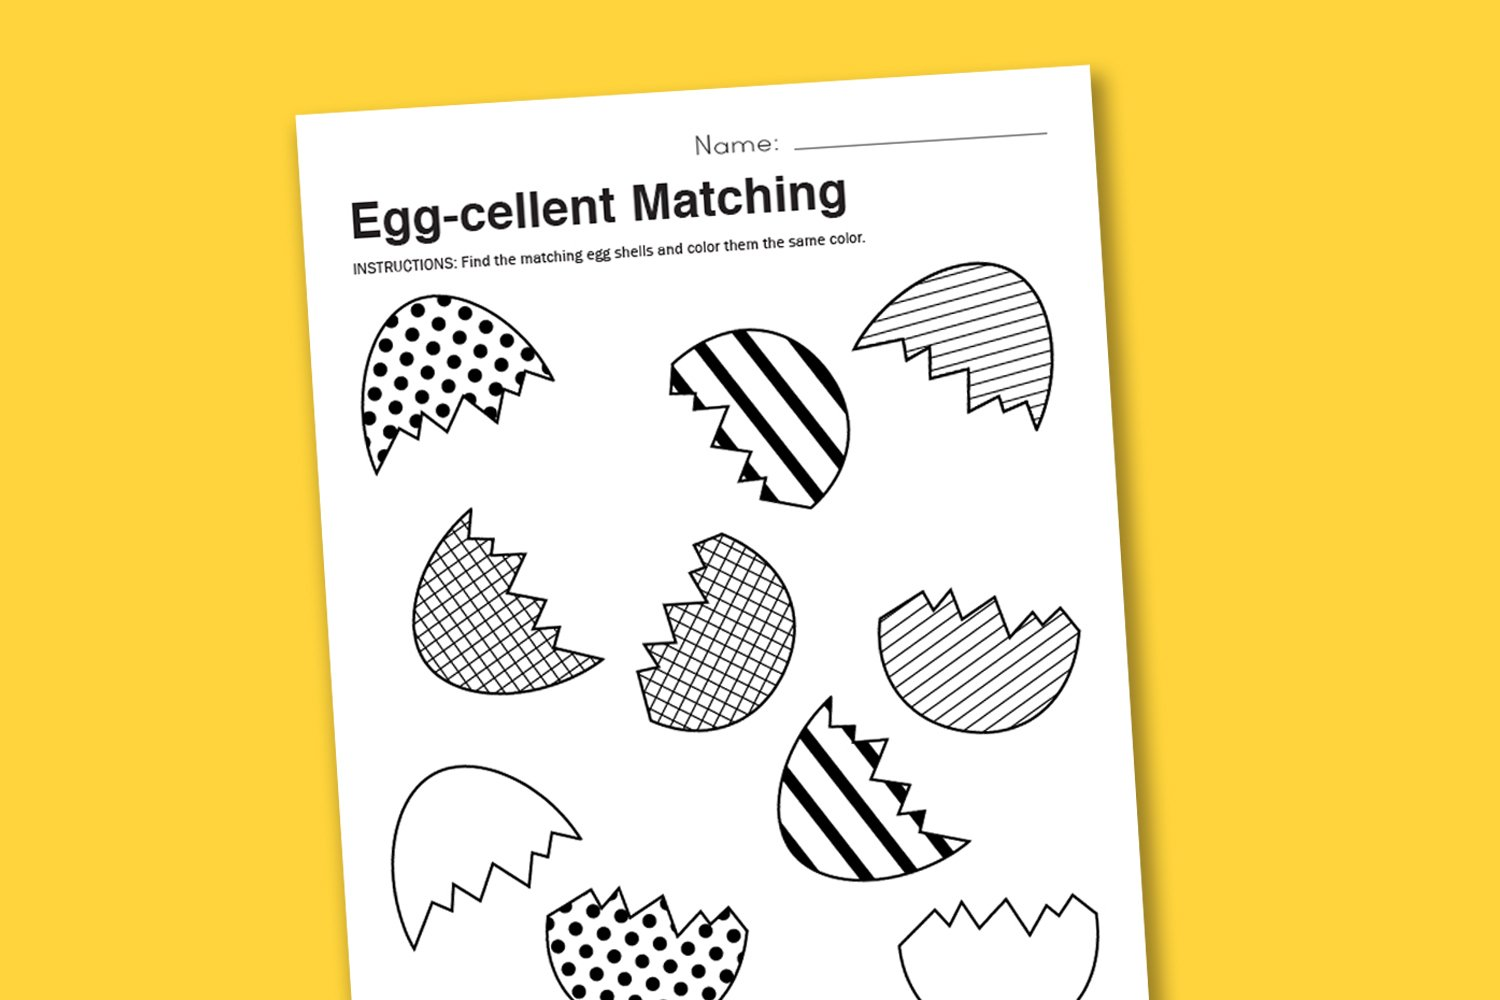 Egg-cellent Matching - Paging Supermom